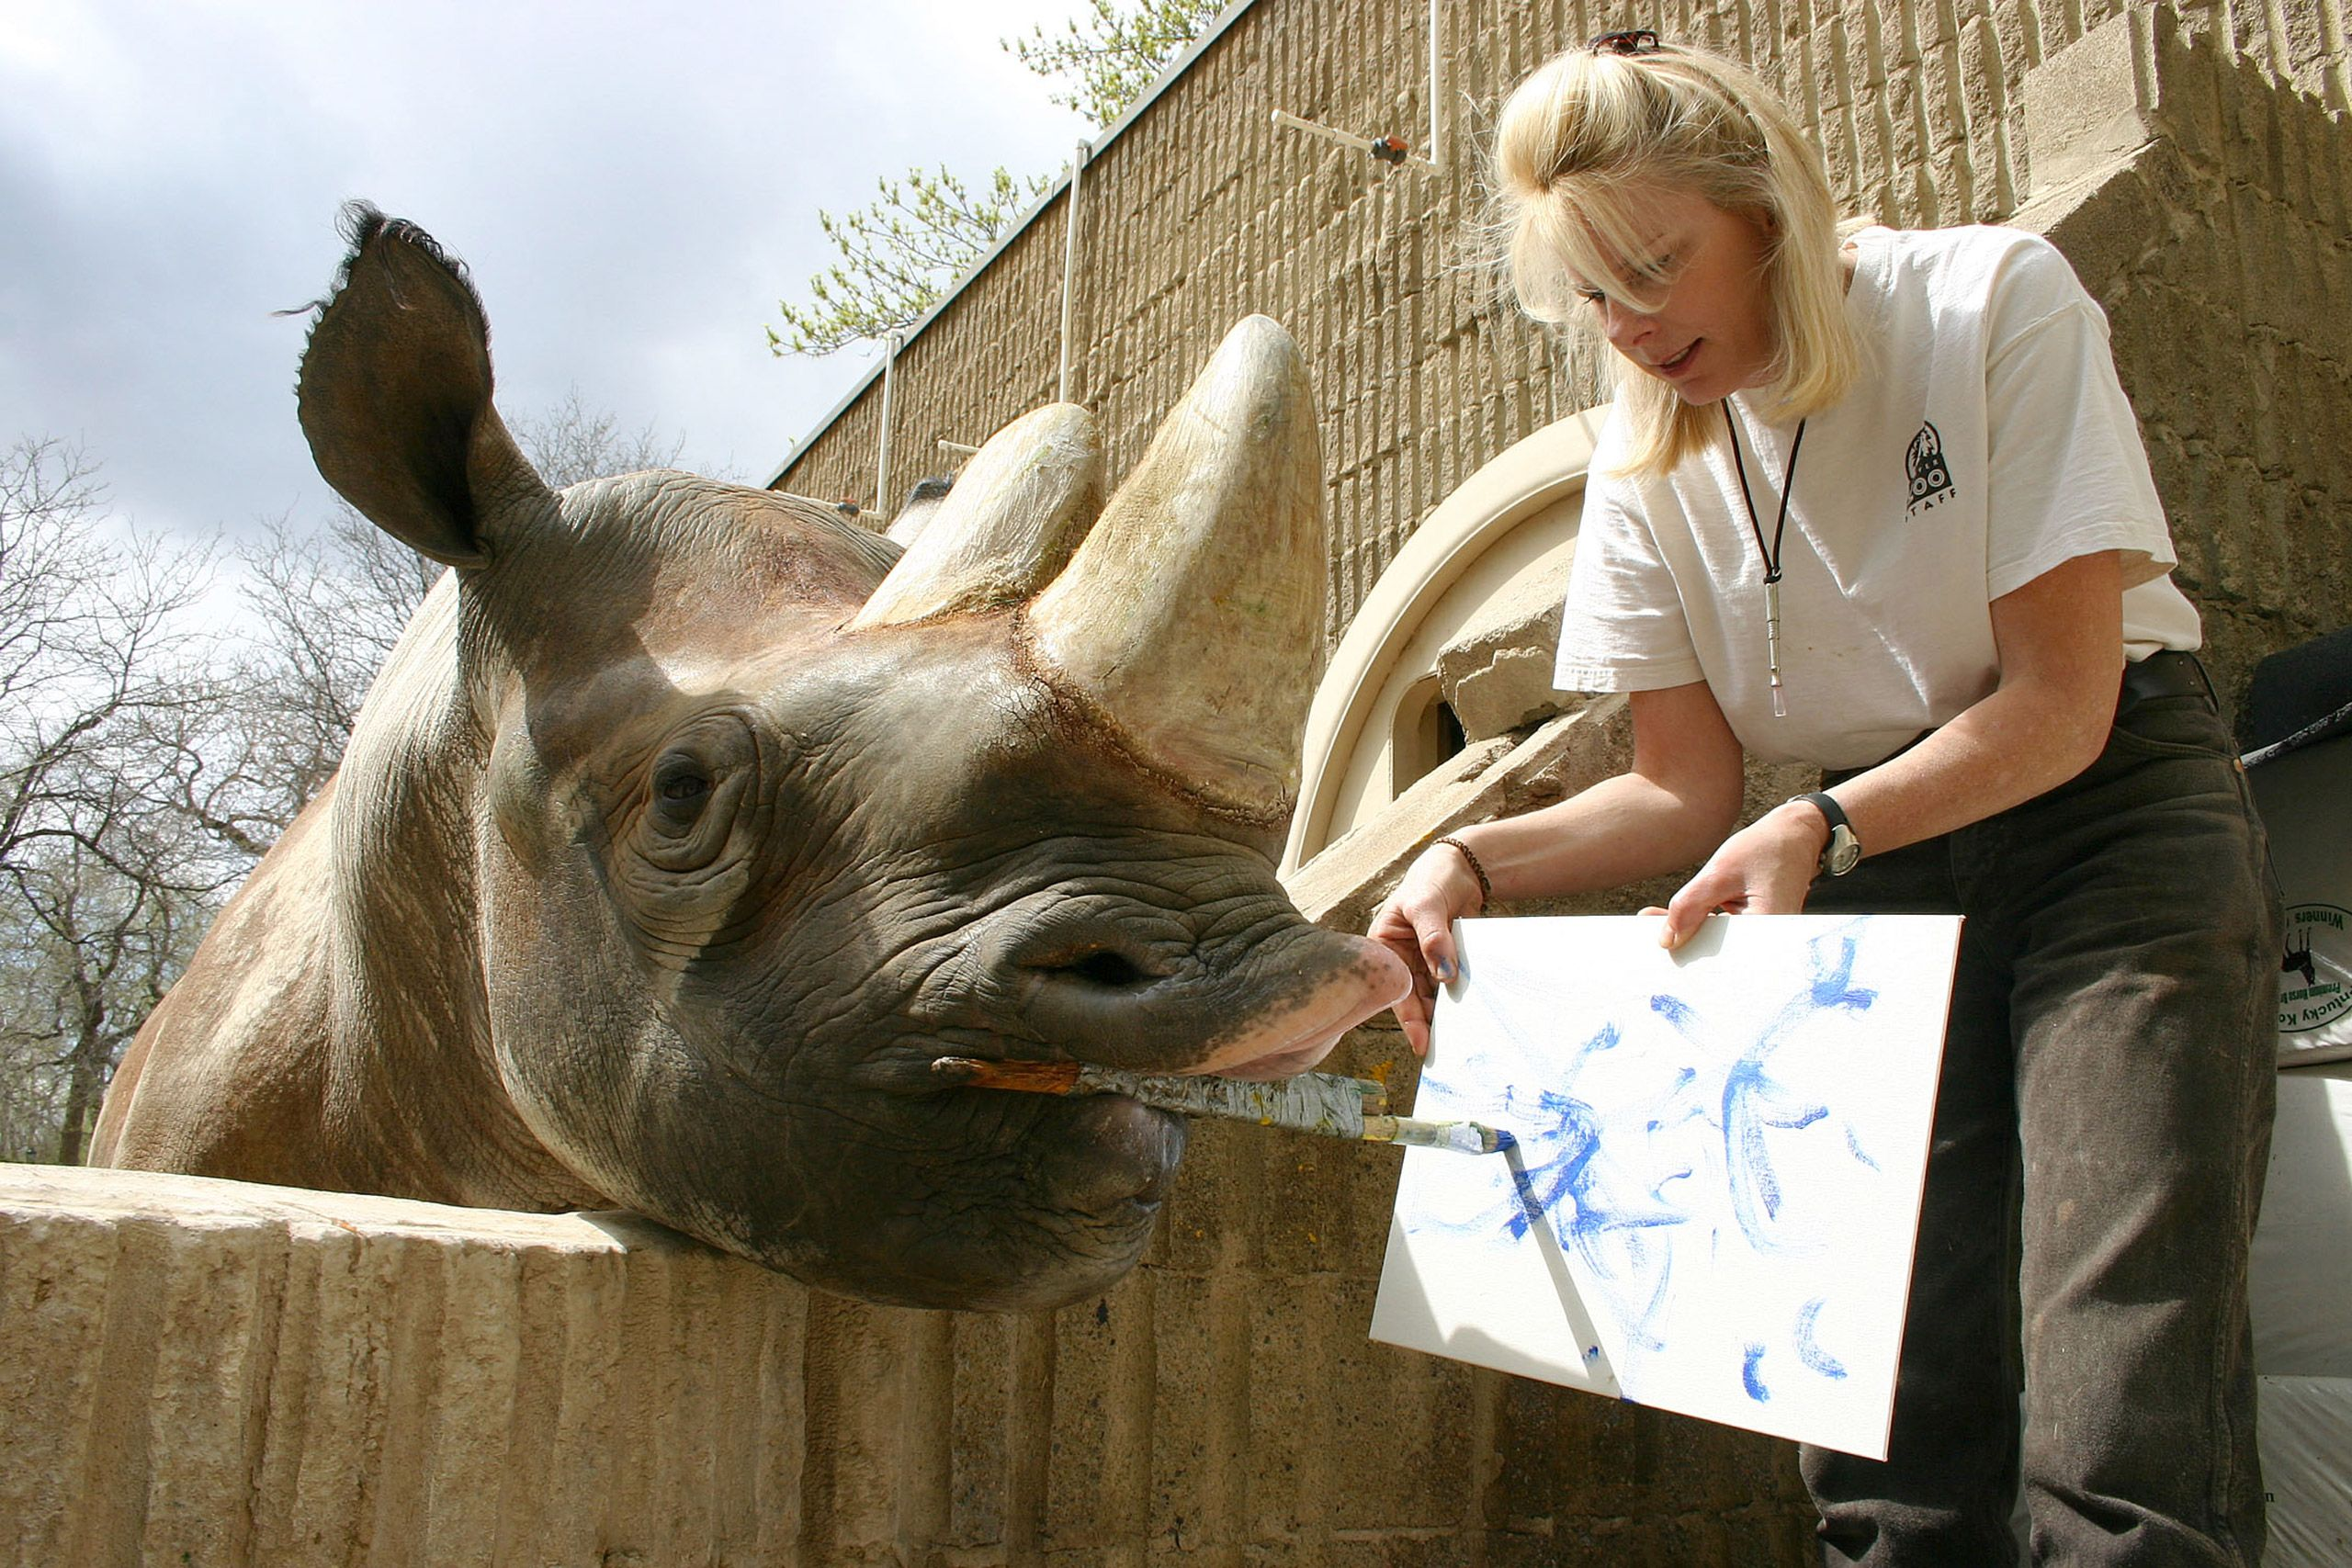 Rhino That Could Paint Dies at Denver Zoo Denver zoo